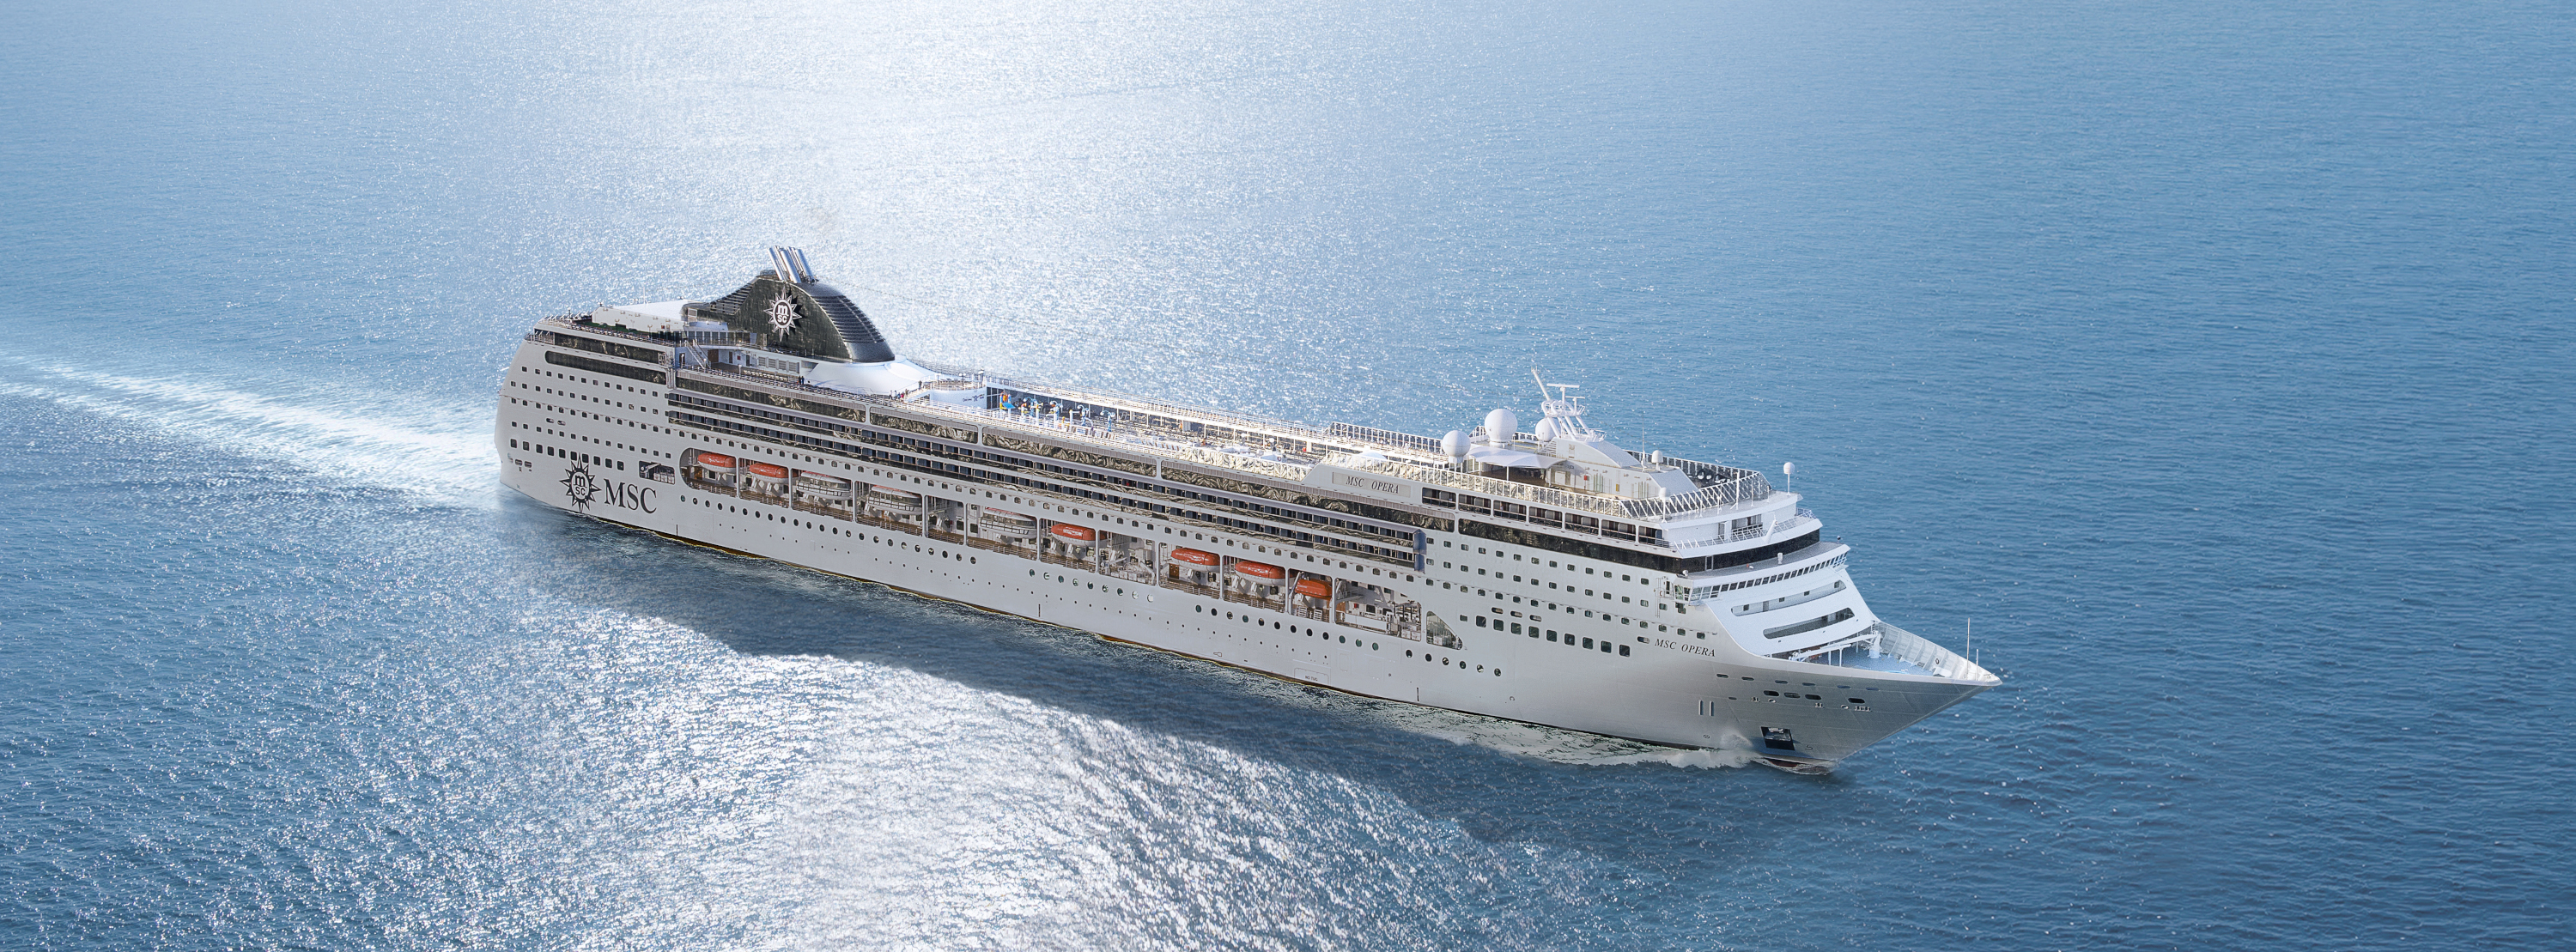 Greek Adventure Cruise on MSC Opera